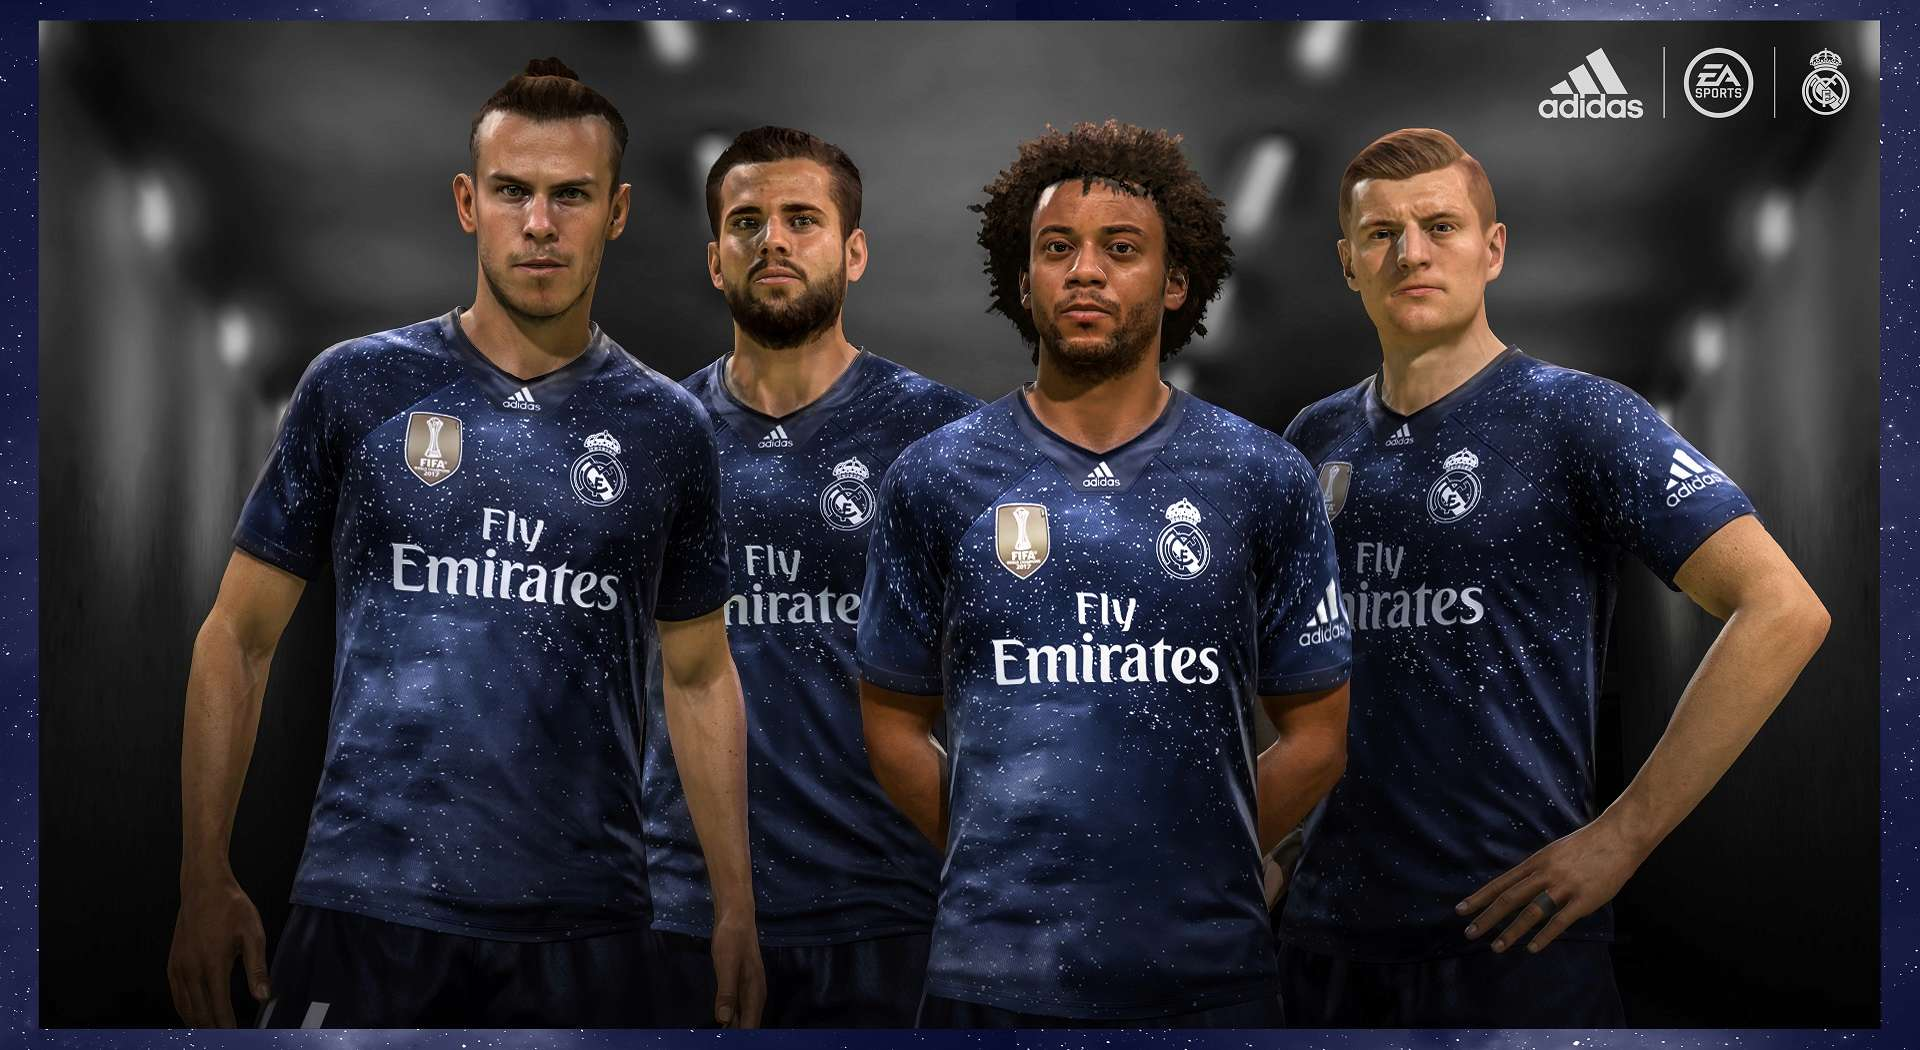 FIFA 19 EA Sports Jersey Real Madrid